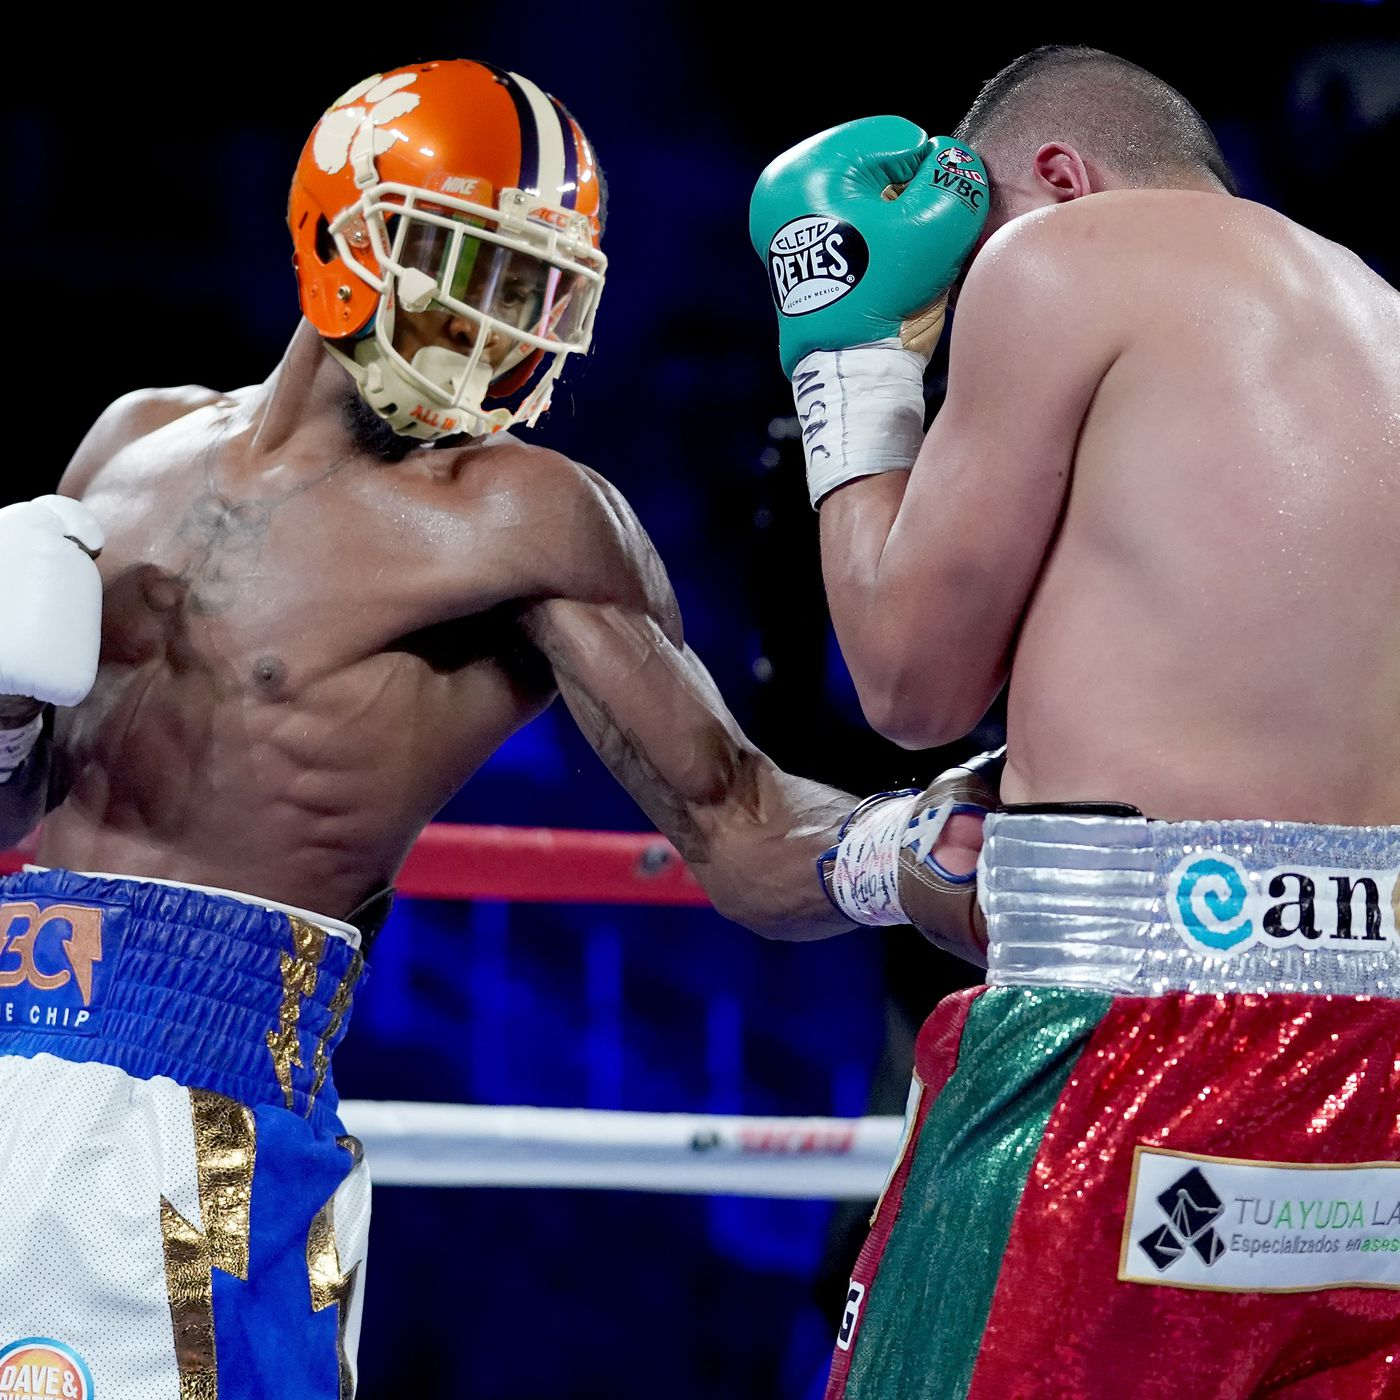 Why does Clemson wear boxing gloves in practice  To avoid DB ... 1ce1fb44c899